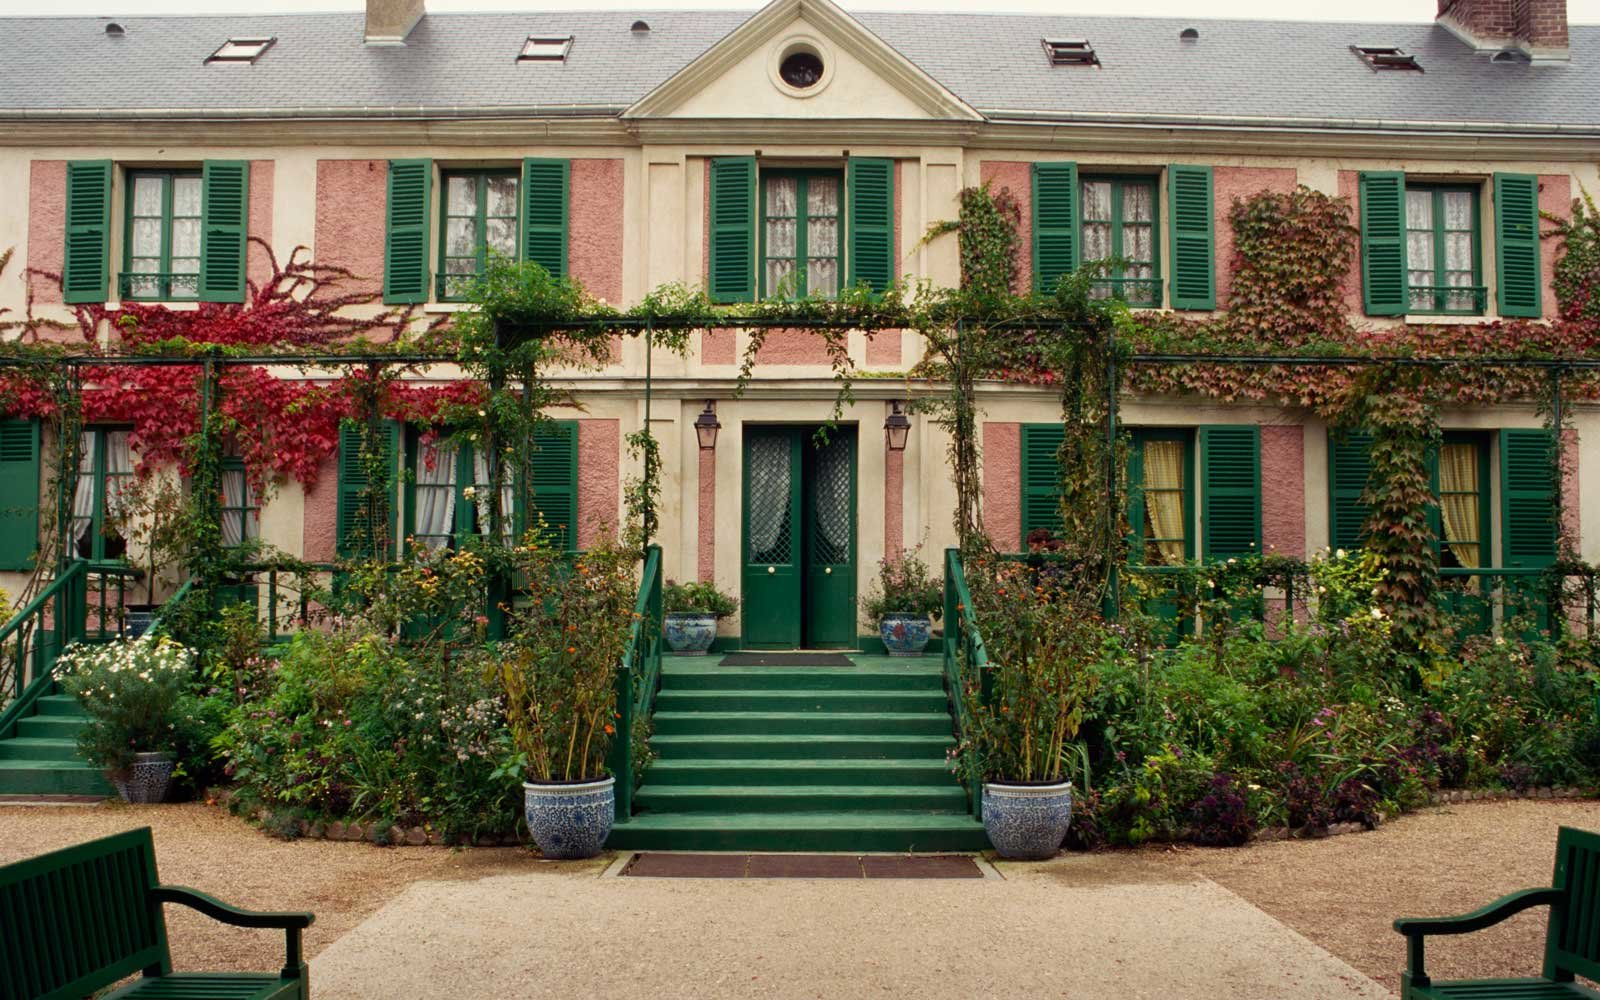 Monet House Giverny France